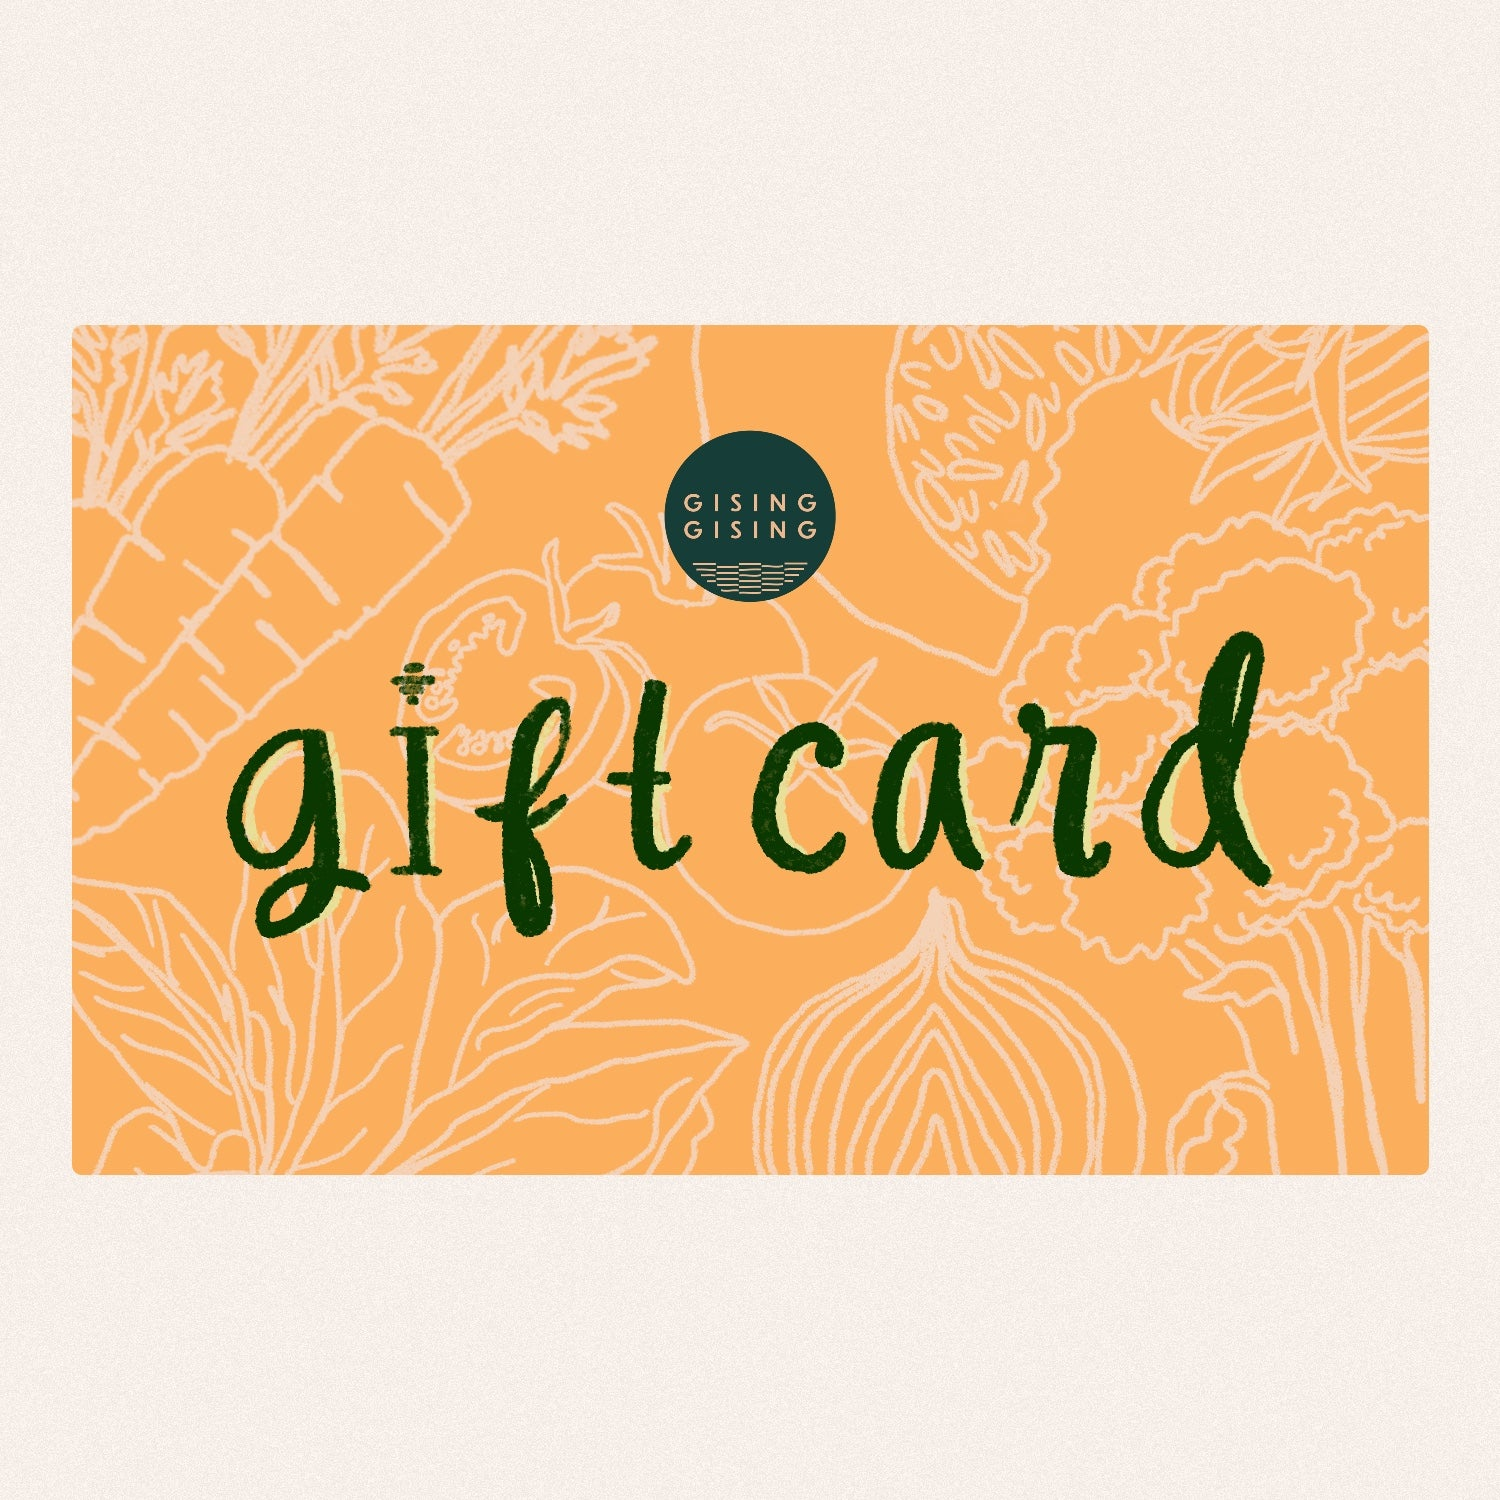 Share the Goods | Gift Card